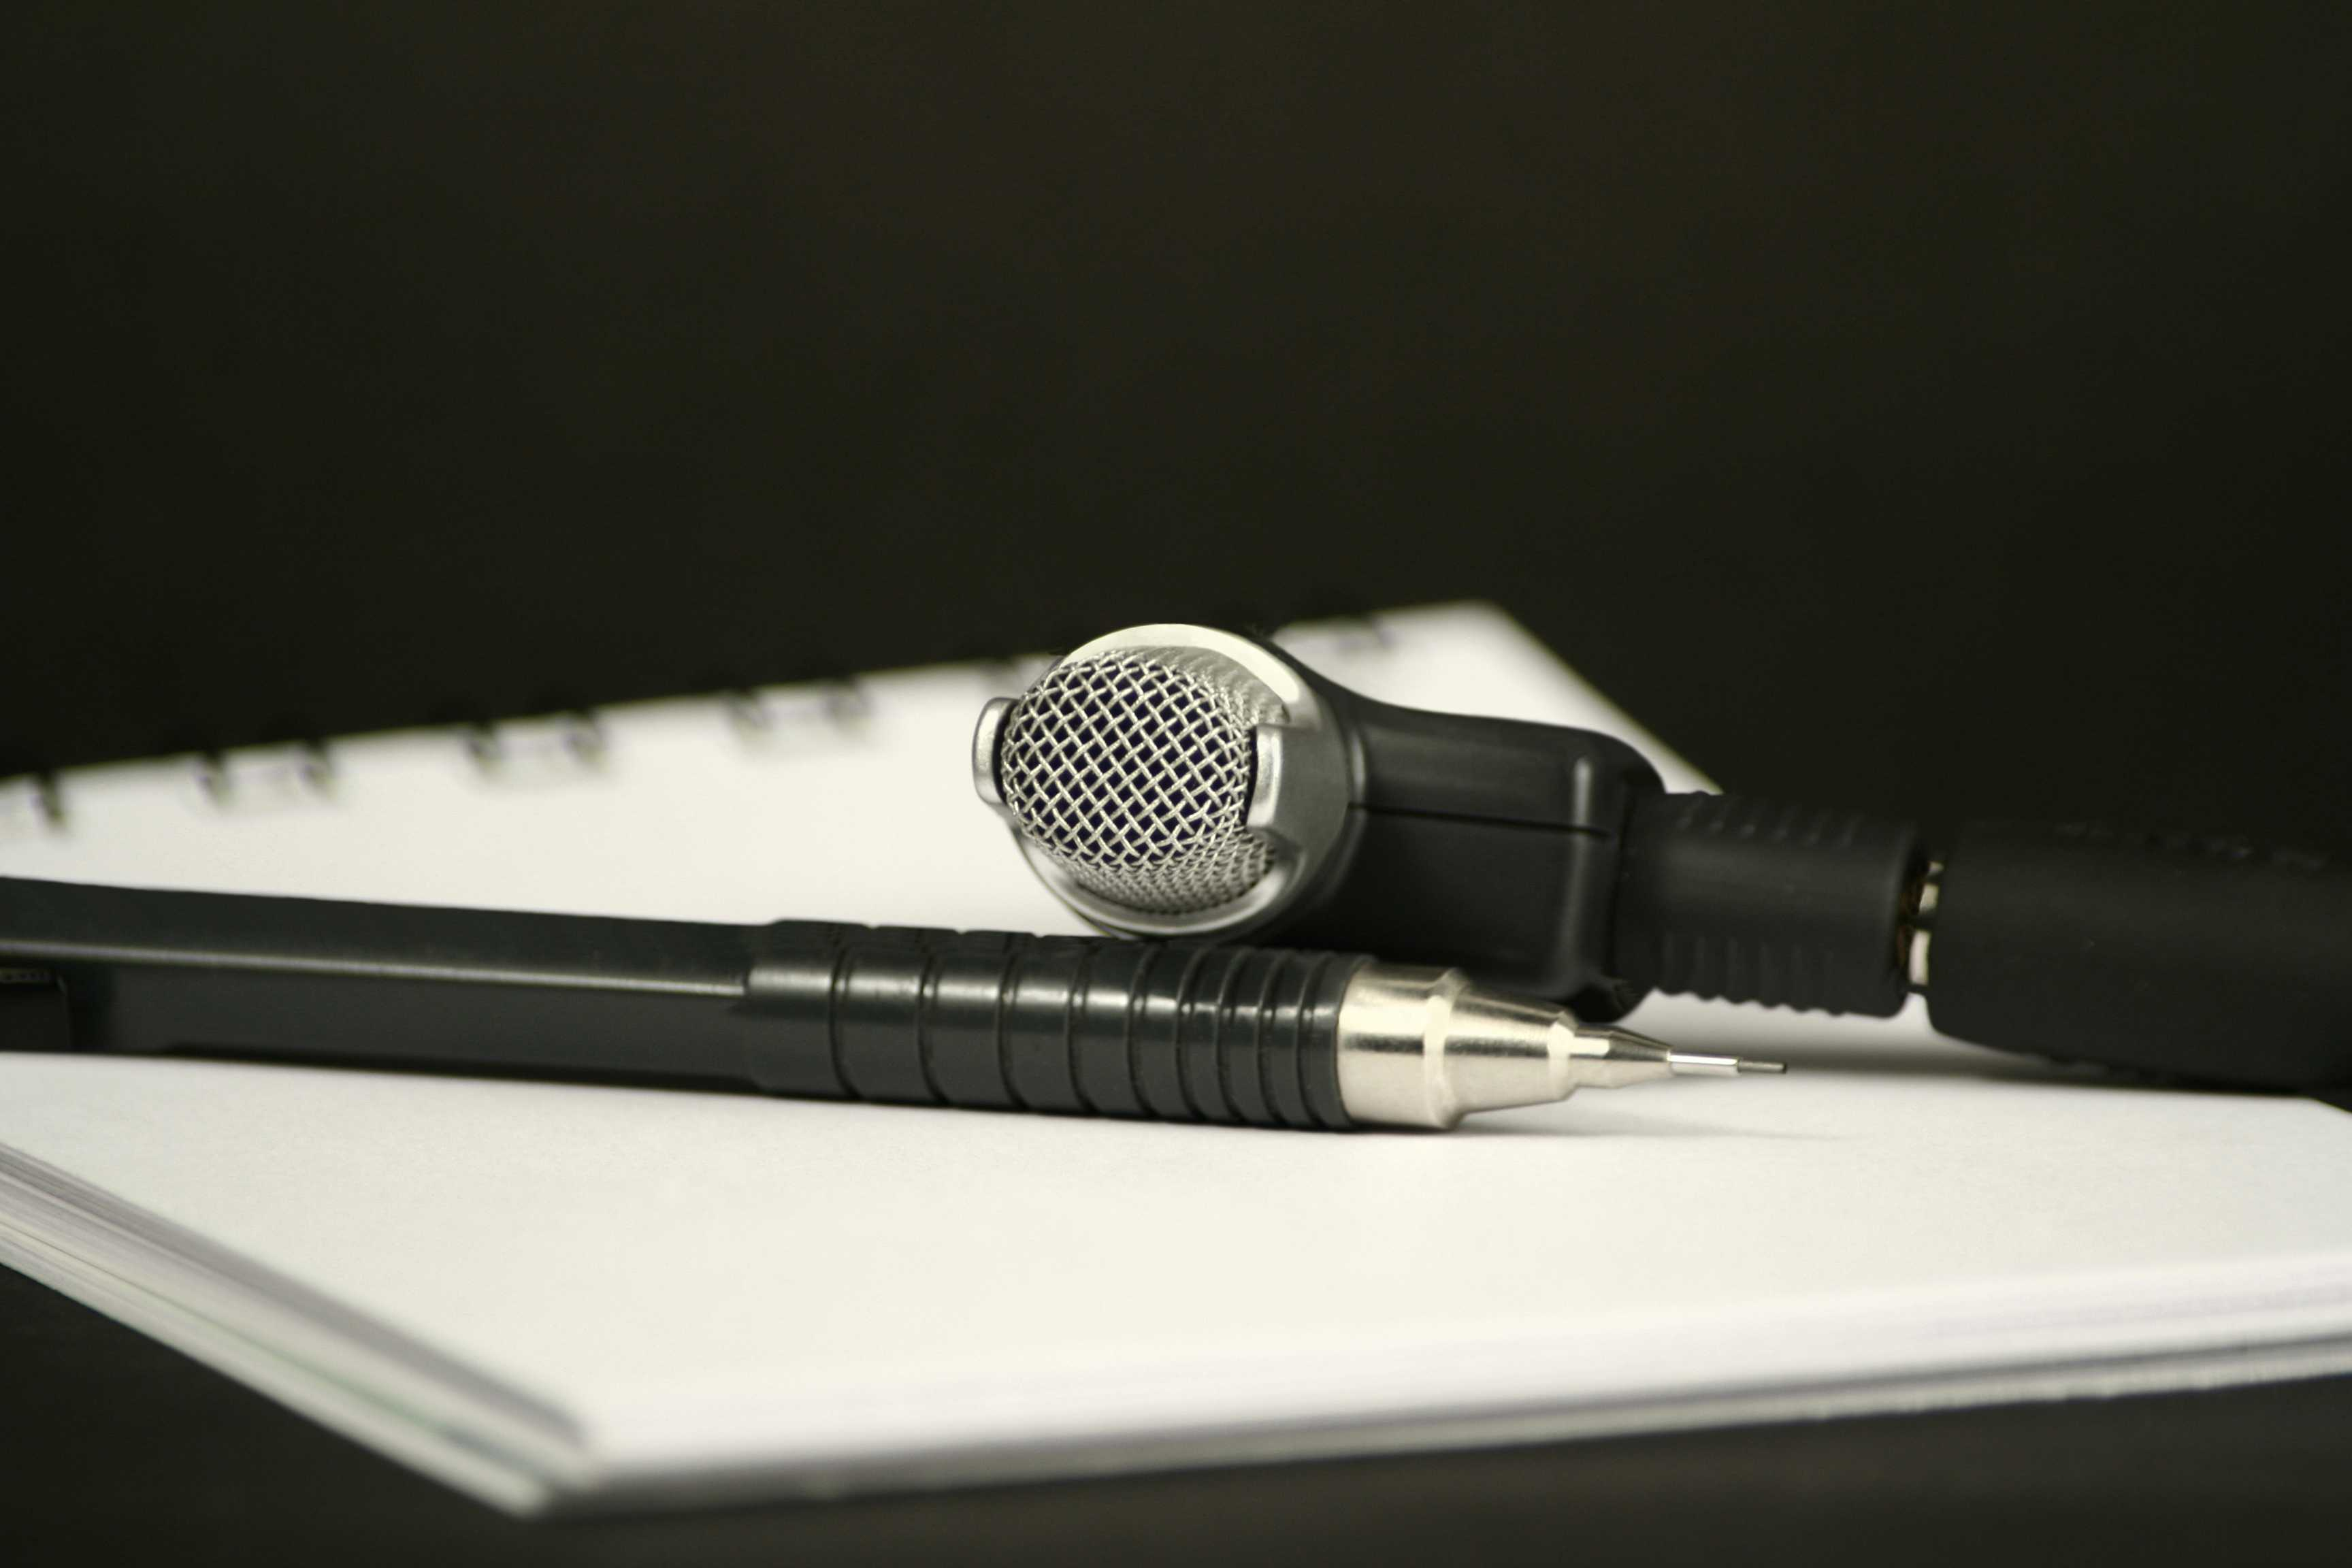 microphone, pencil and note pad